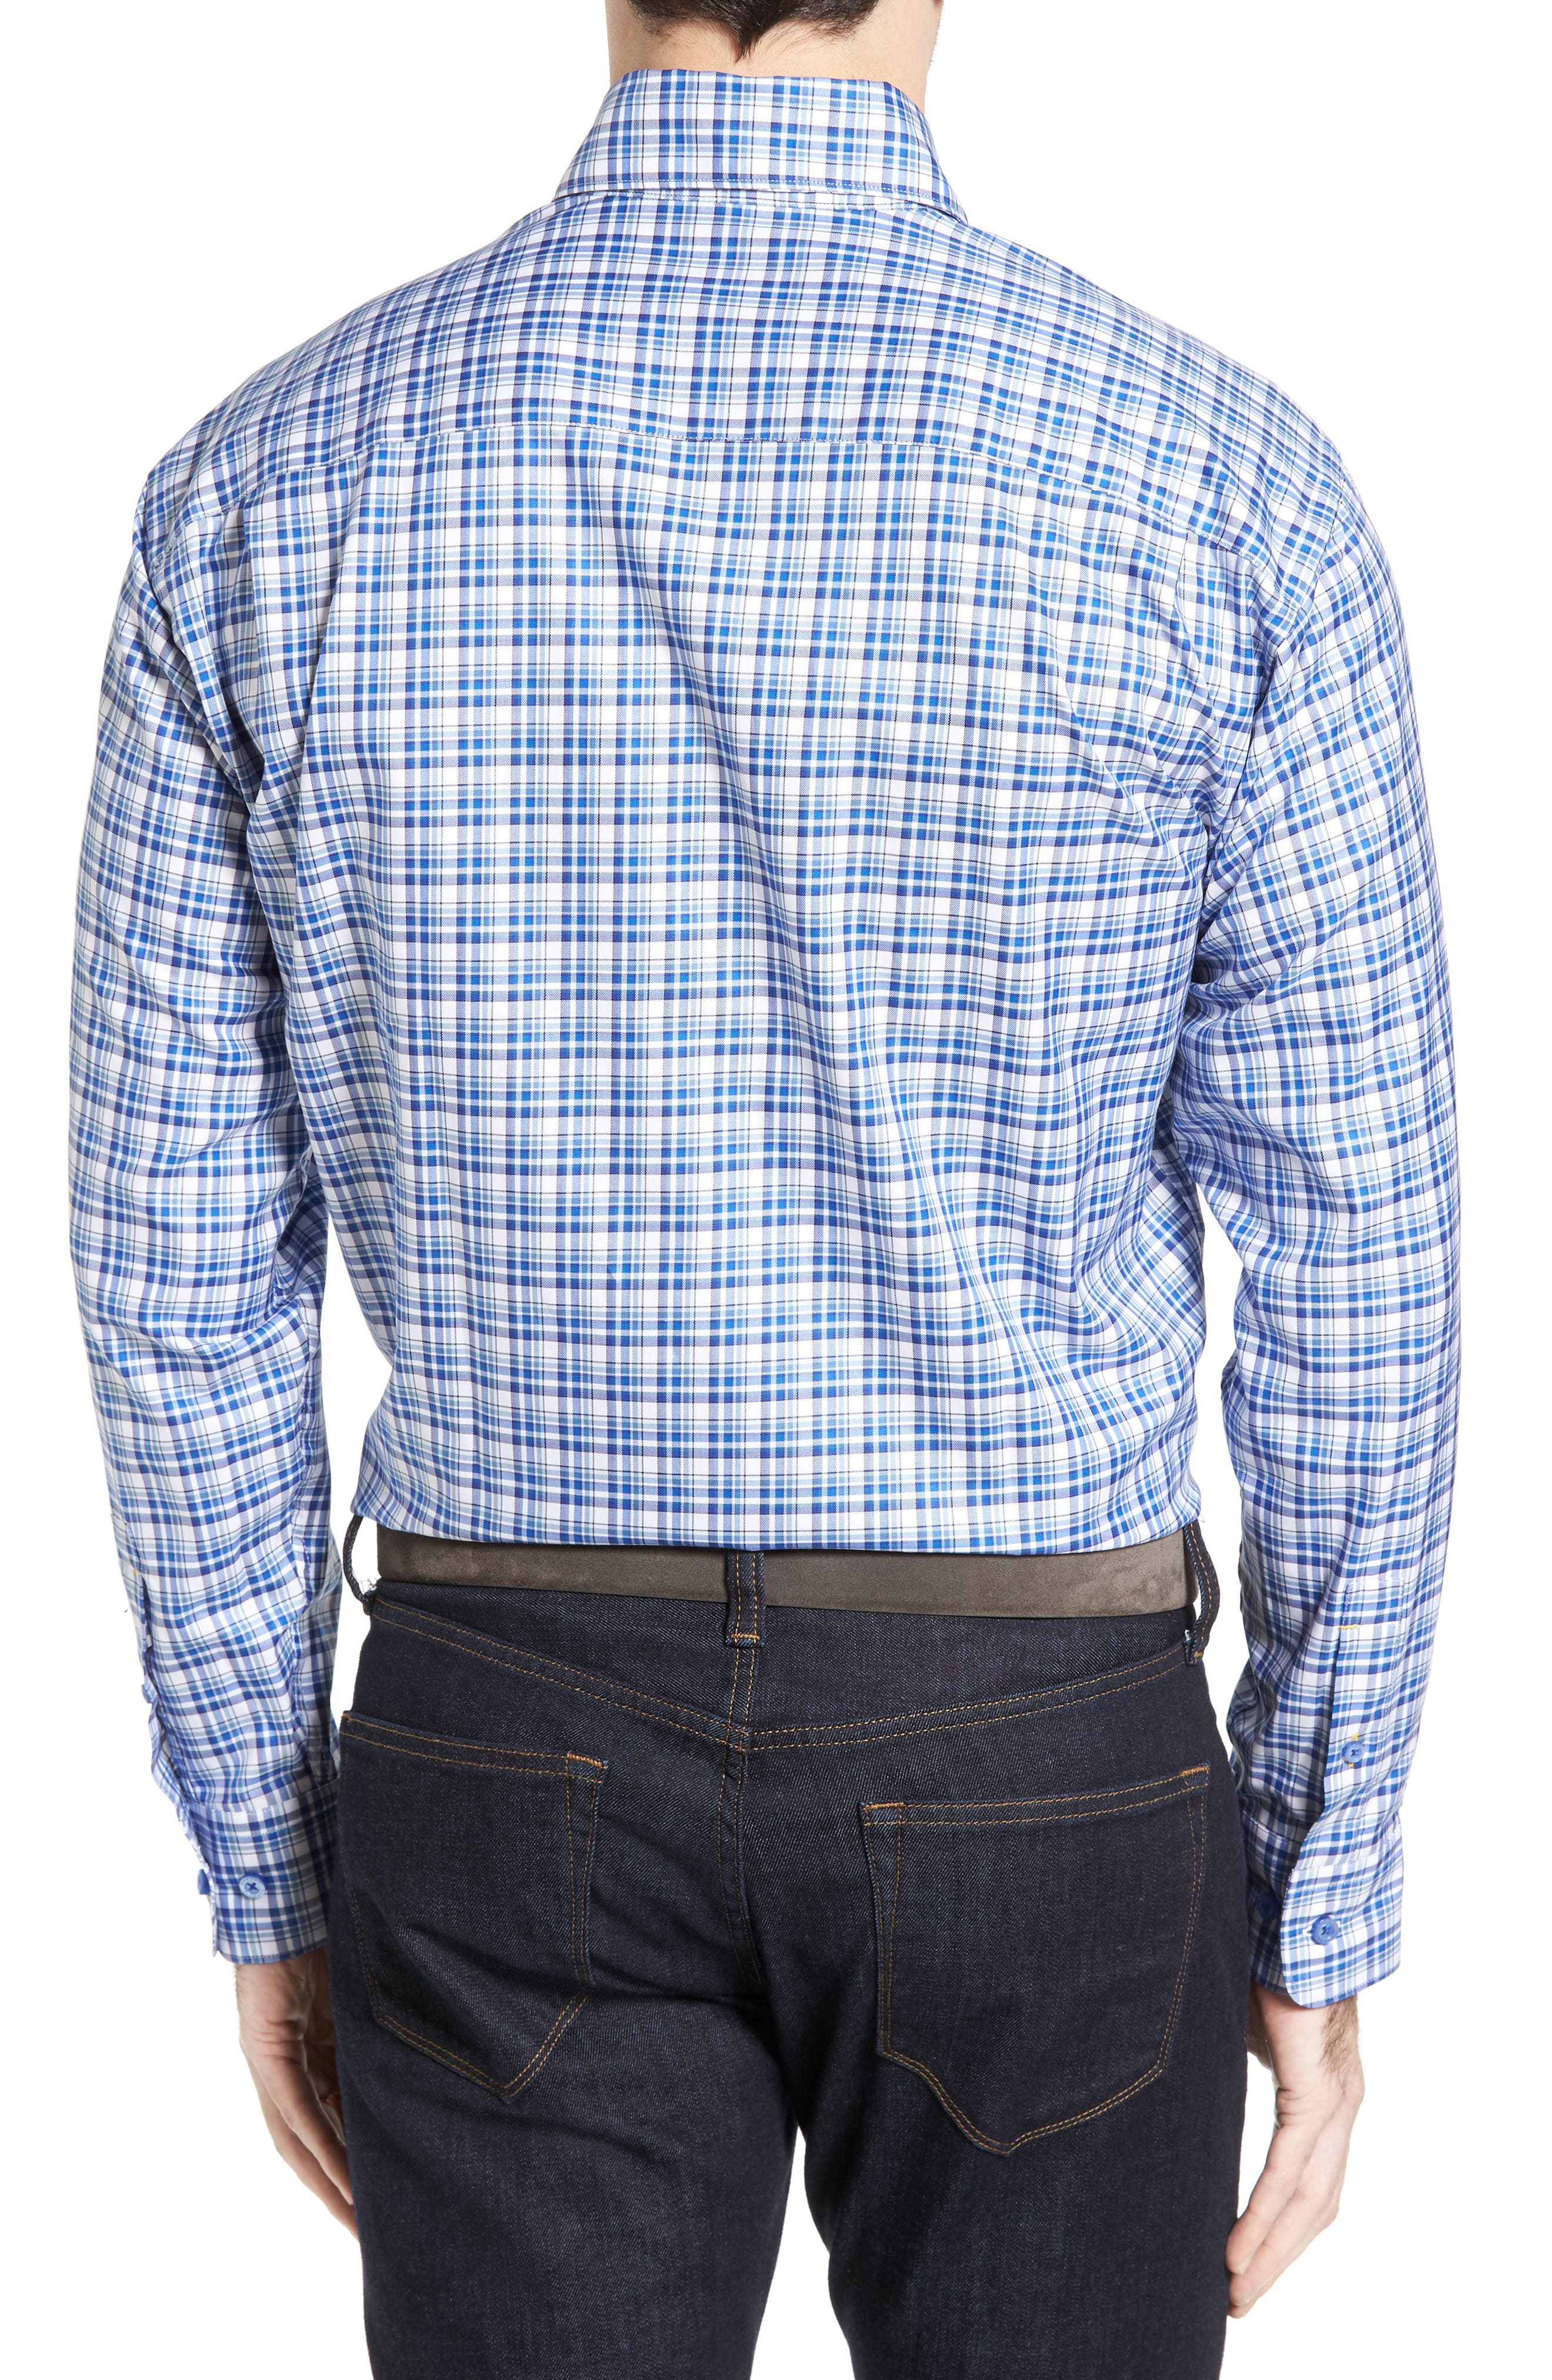 Anderson Classic Fit Plaid Micro Twill Sport Shirt,                             Alternate thumbnail 2, color,                             Pacific